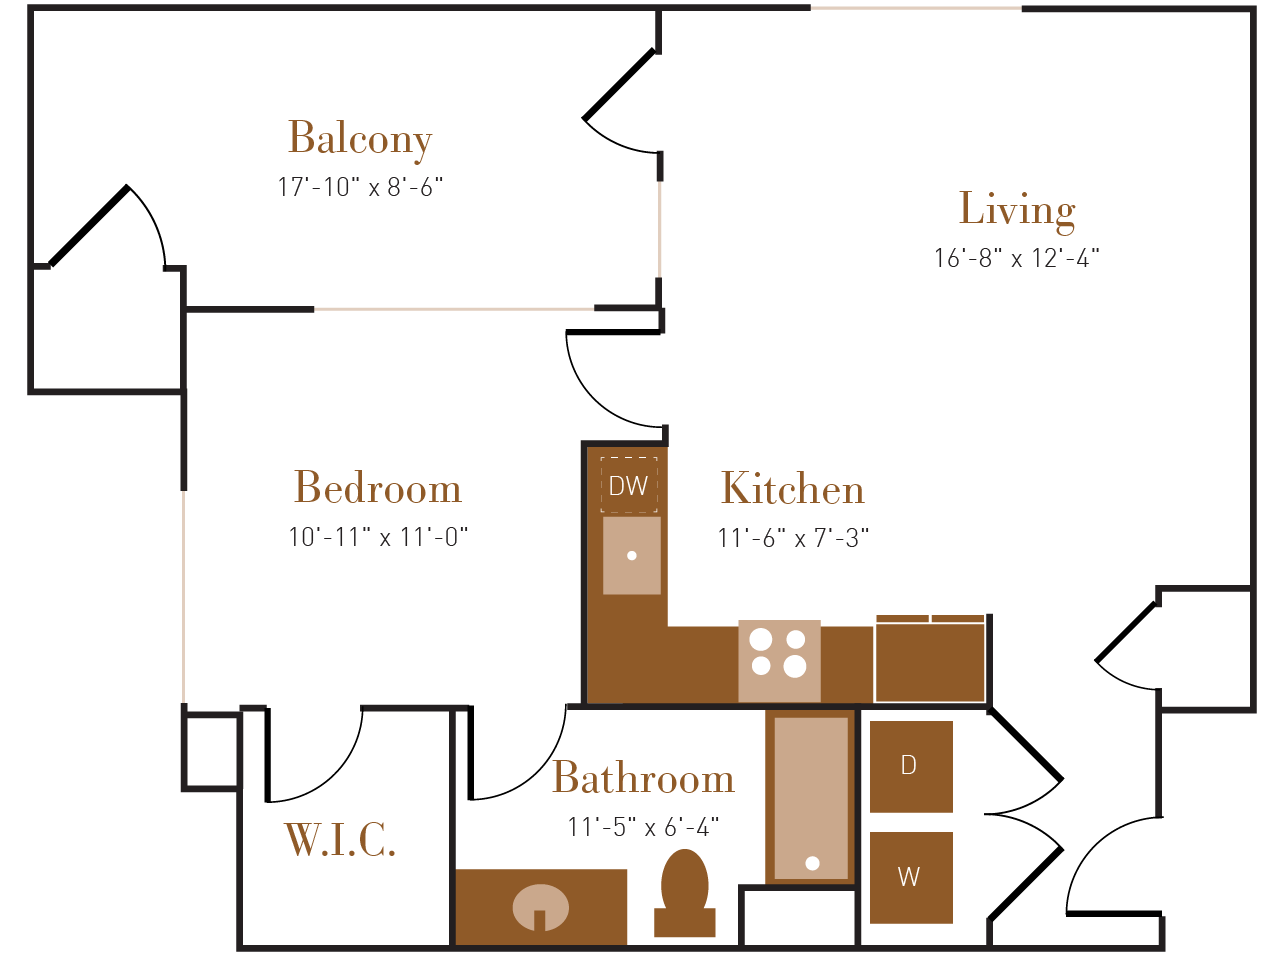 A Eight floor plan diagram. One bedroom, one bathroom, an open kitchen and living area, a balcony, and a washer dryer.